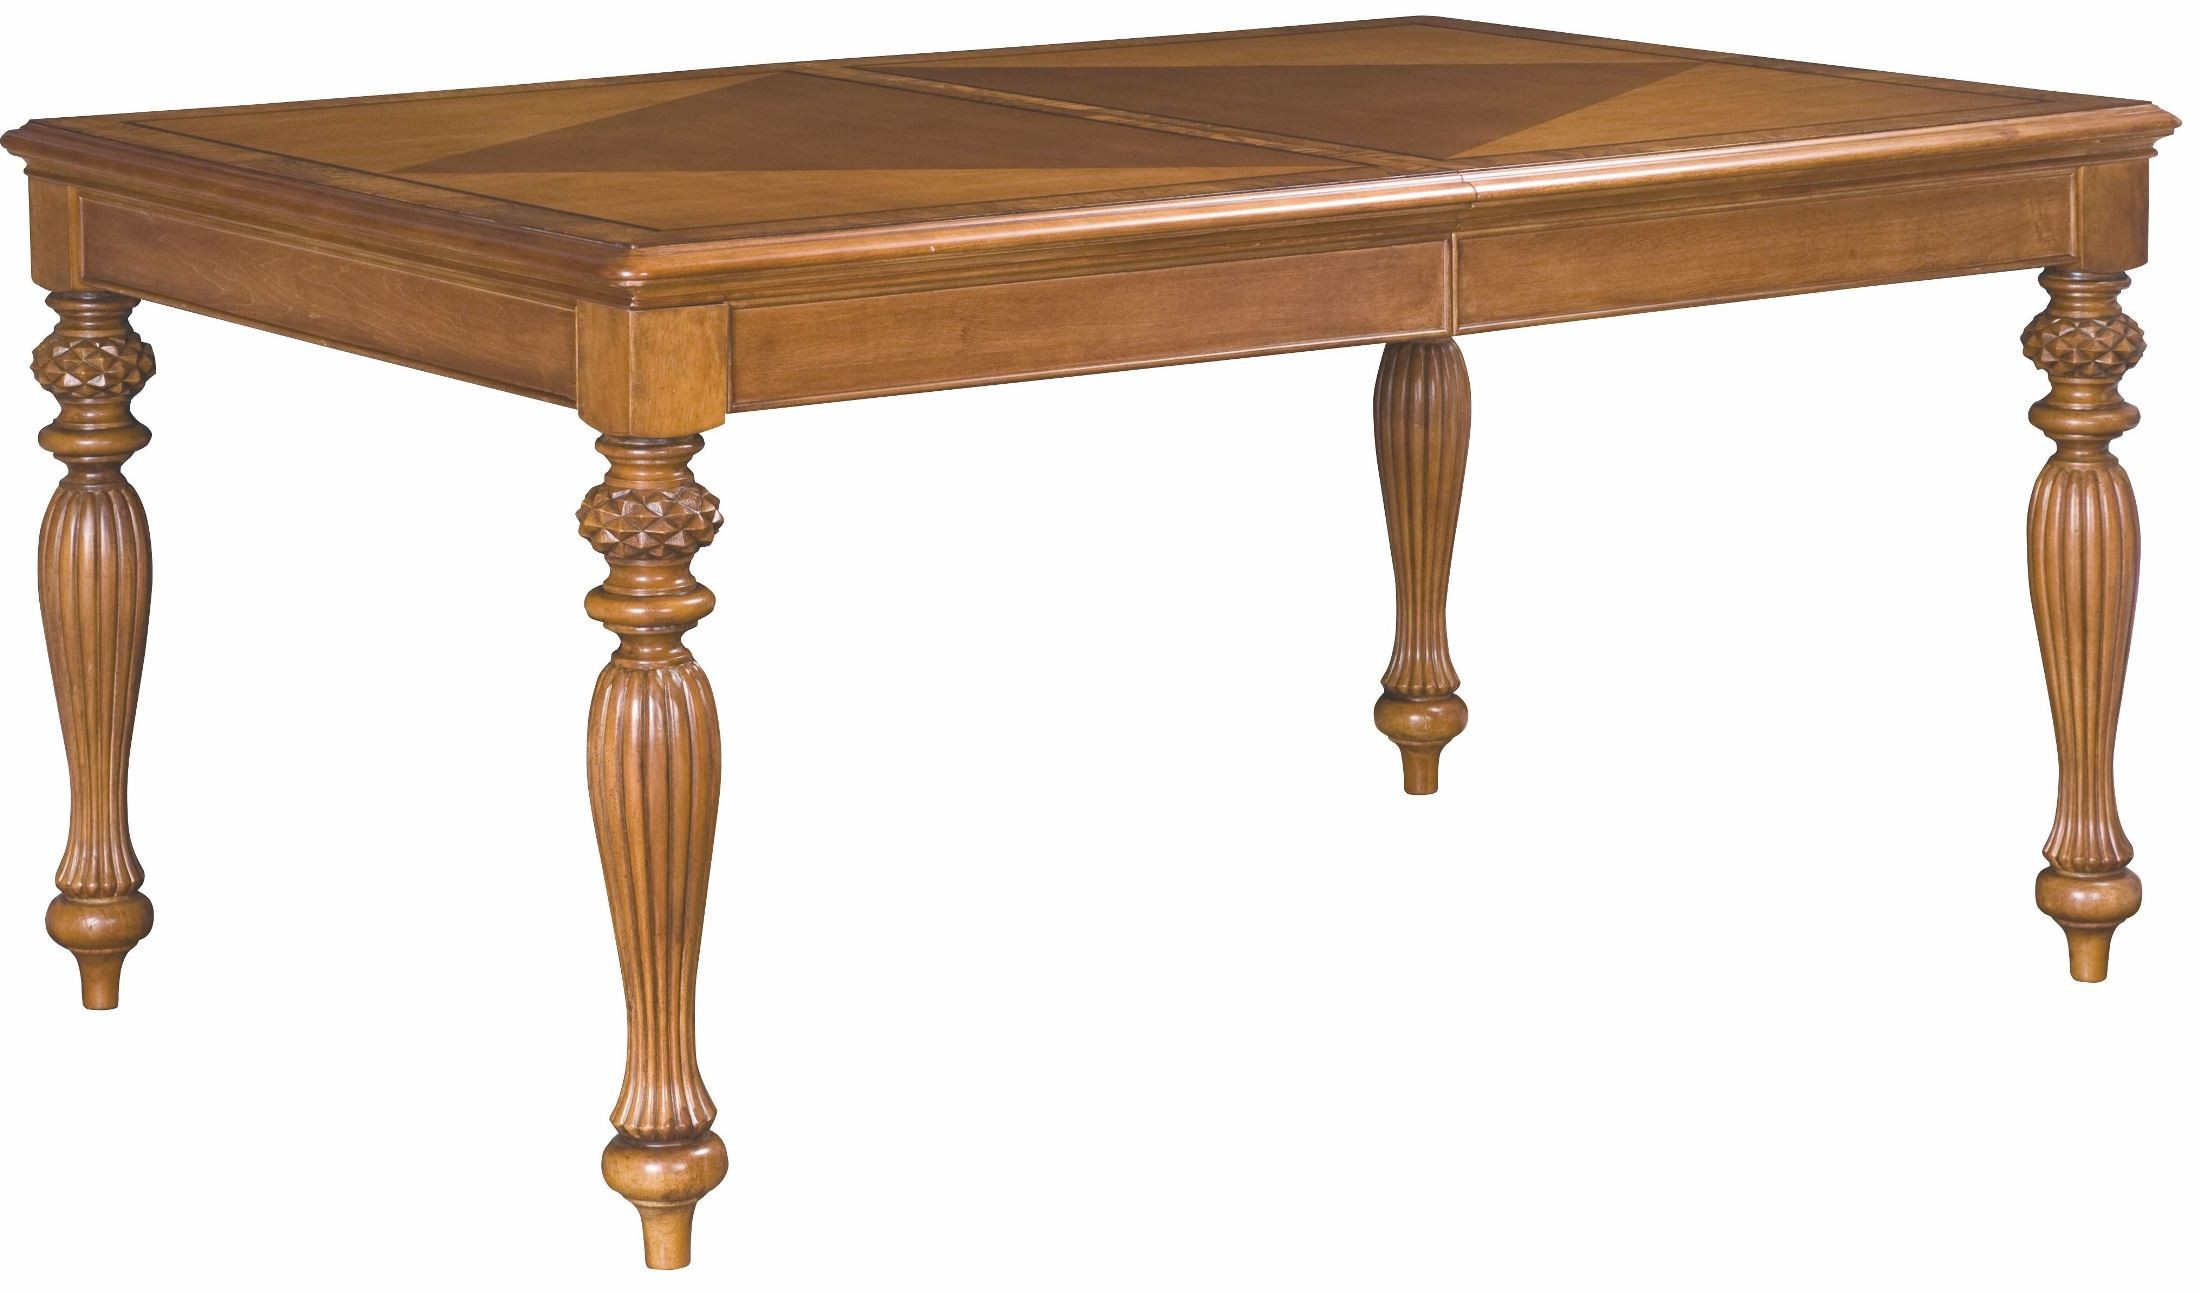 Grand isle amber extendable rectangular leg dining table for One leg dining table